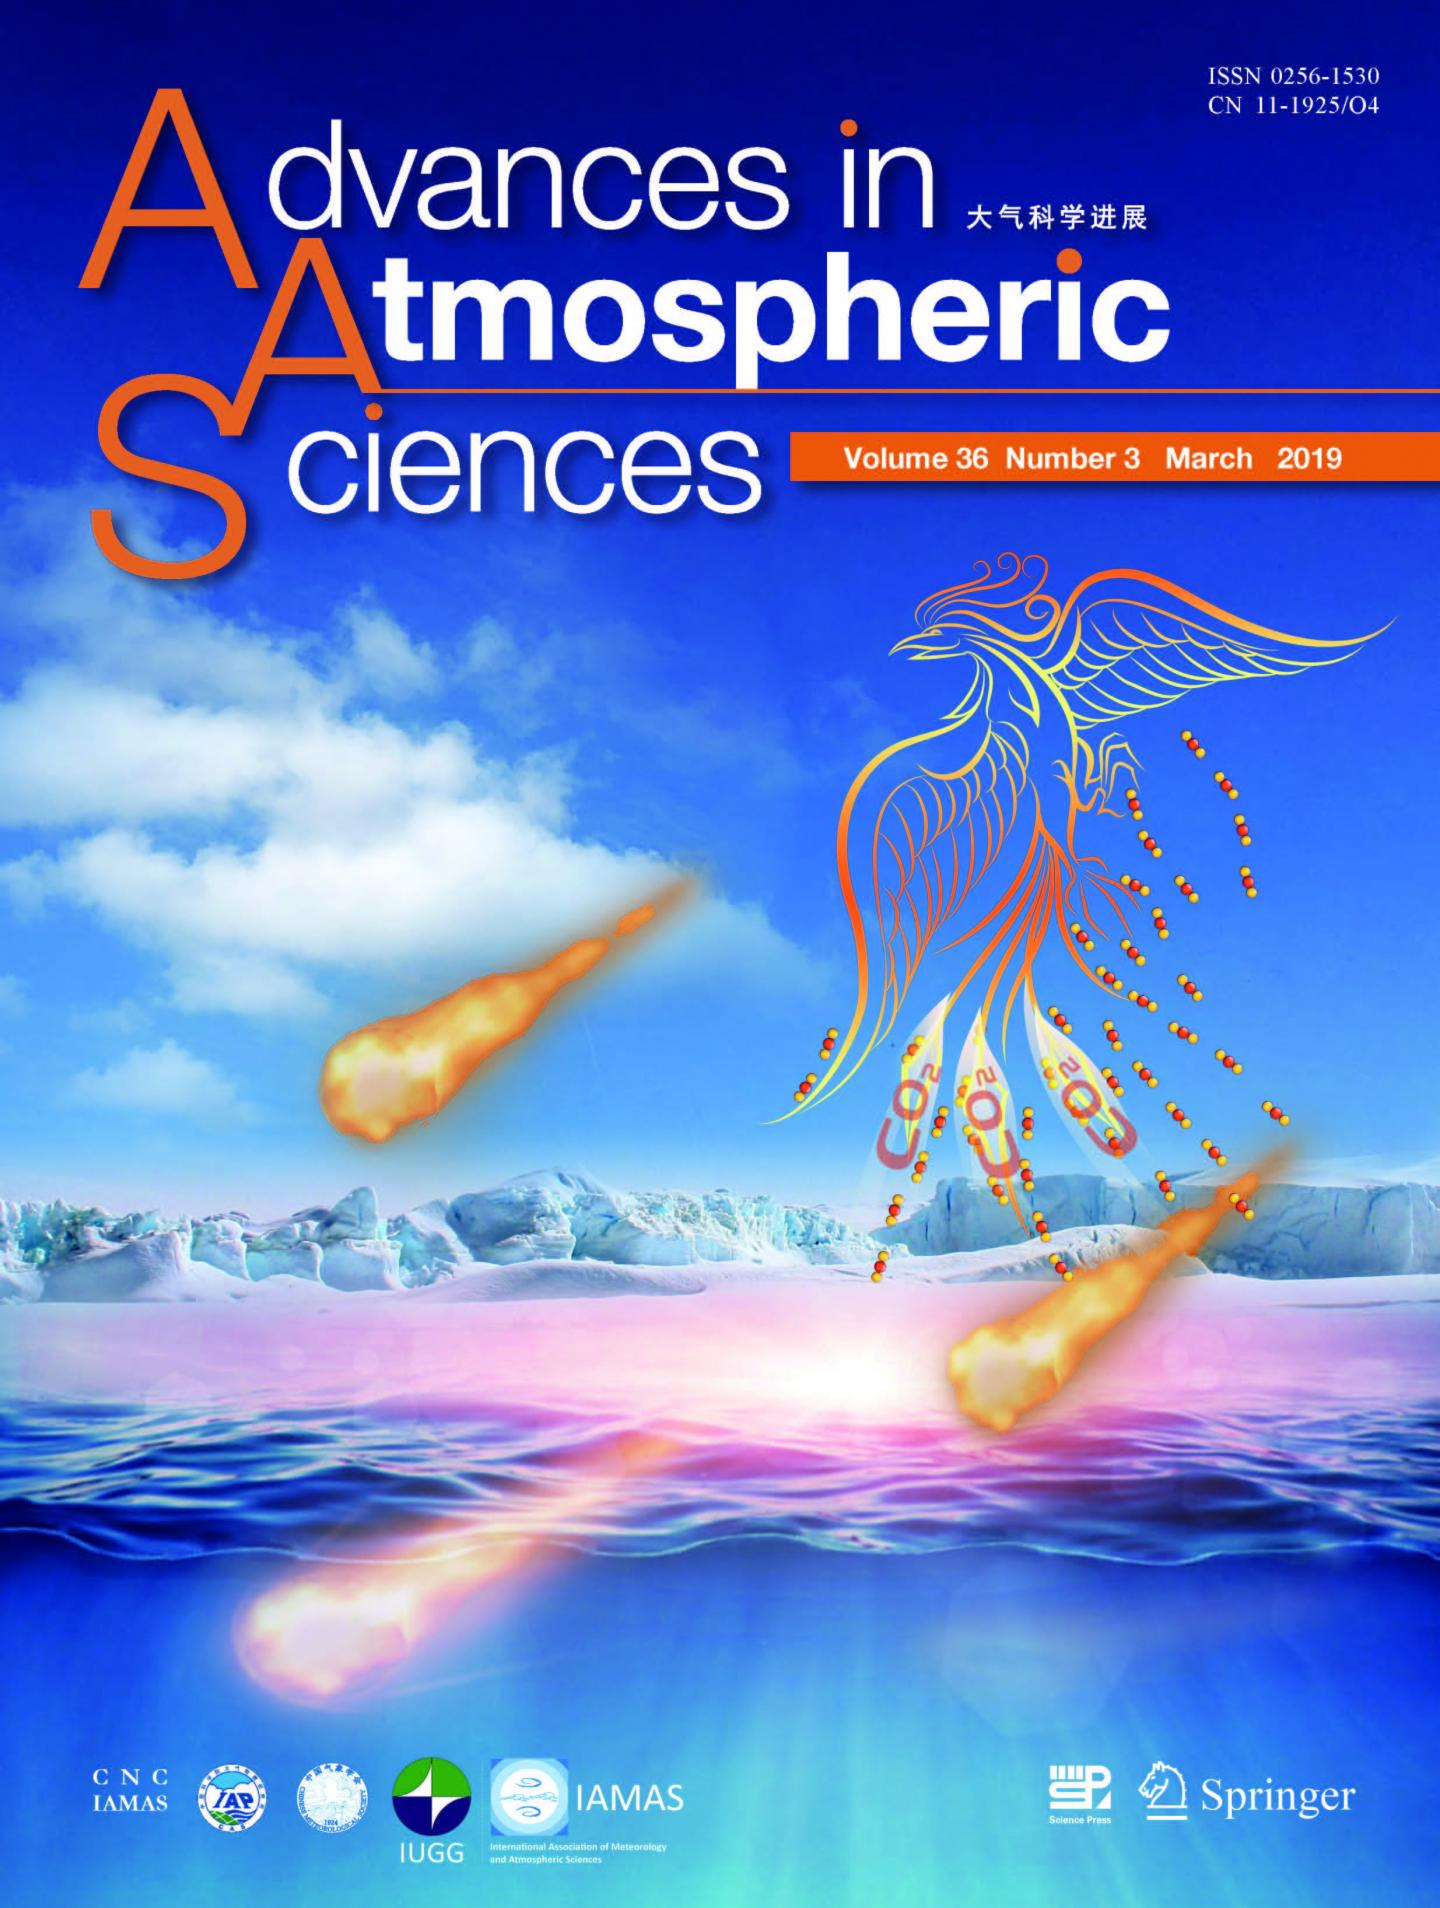 Cover Article of Issue 36(3) of <em>Advances in Atmospheric Sciences</em>